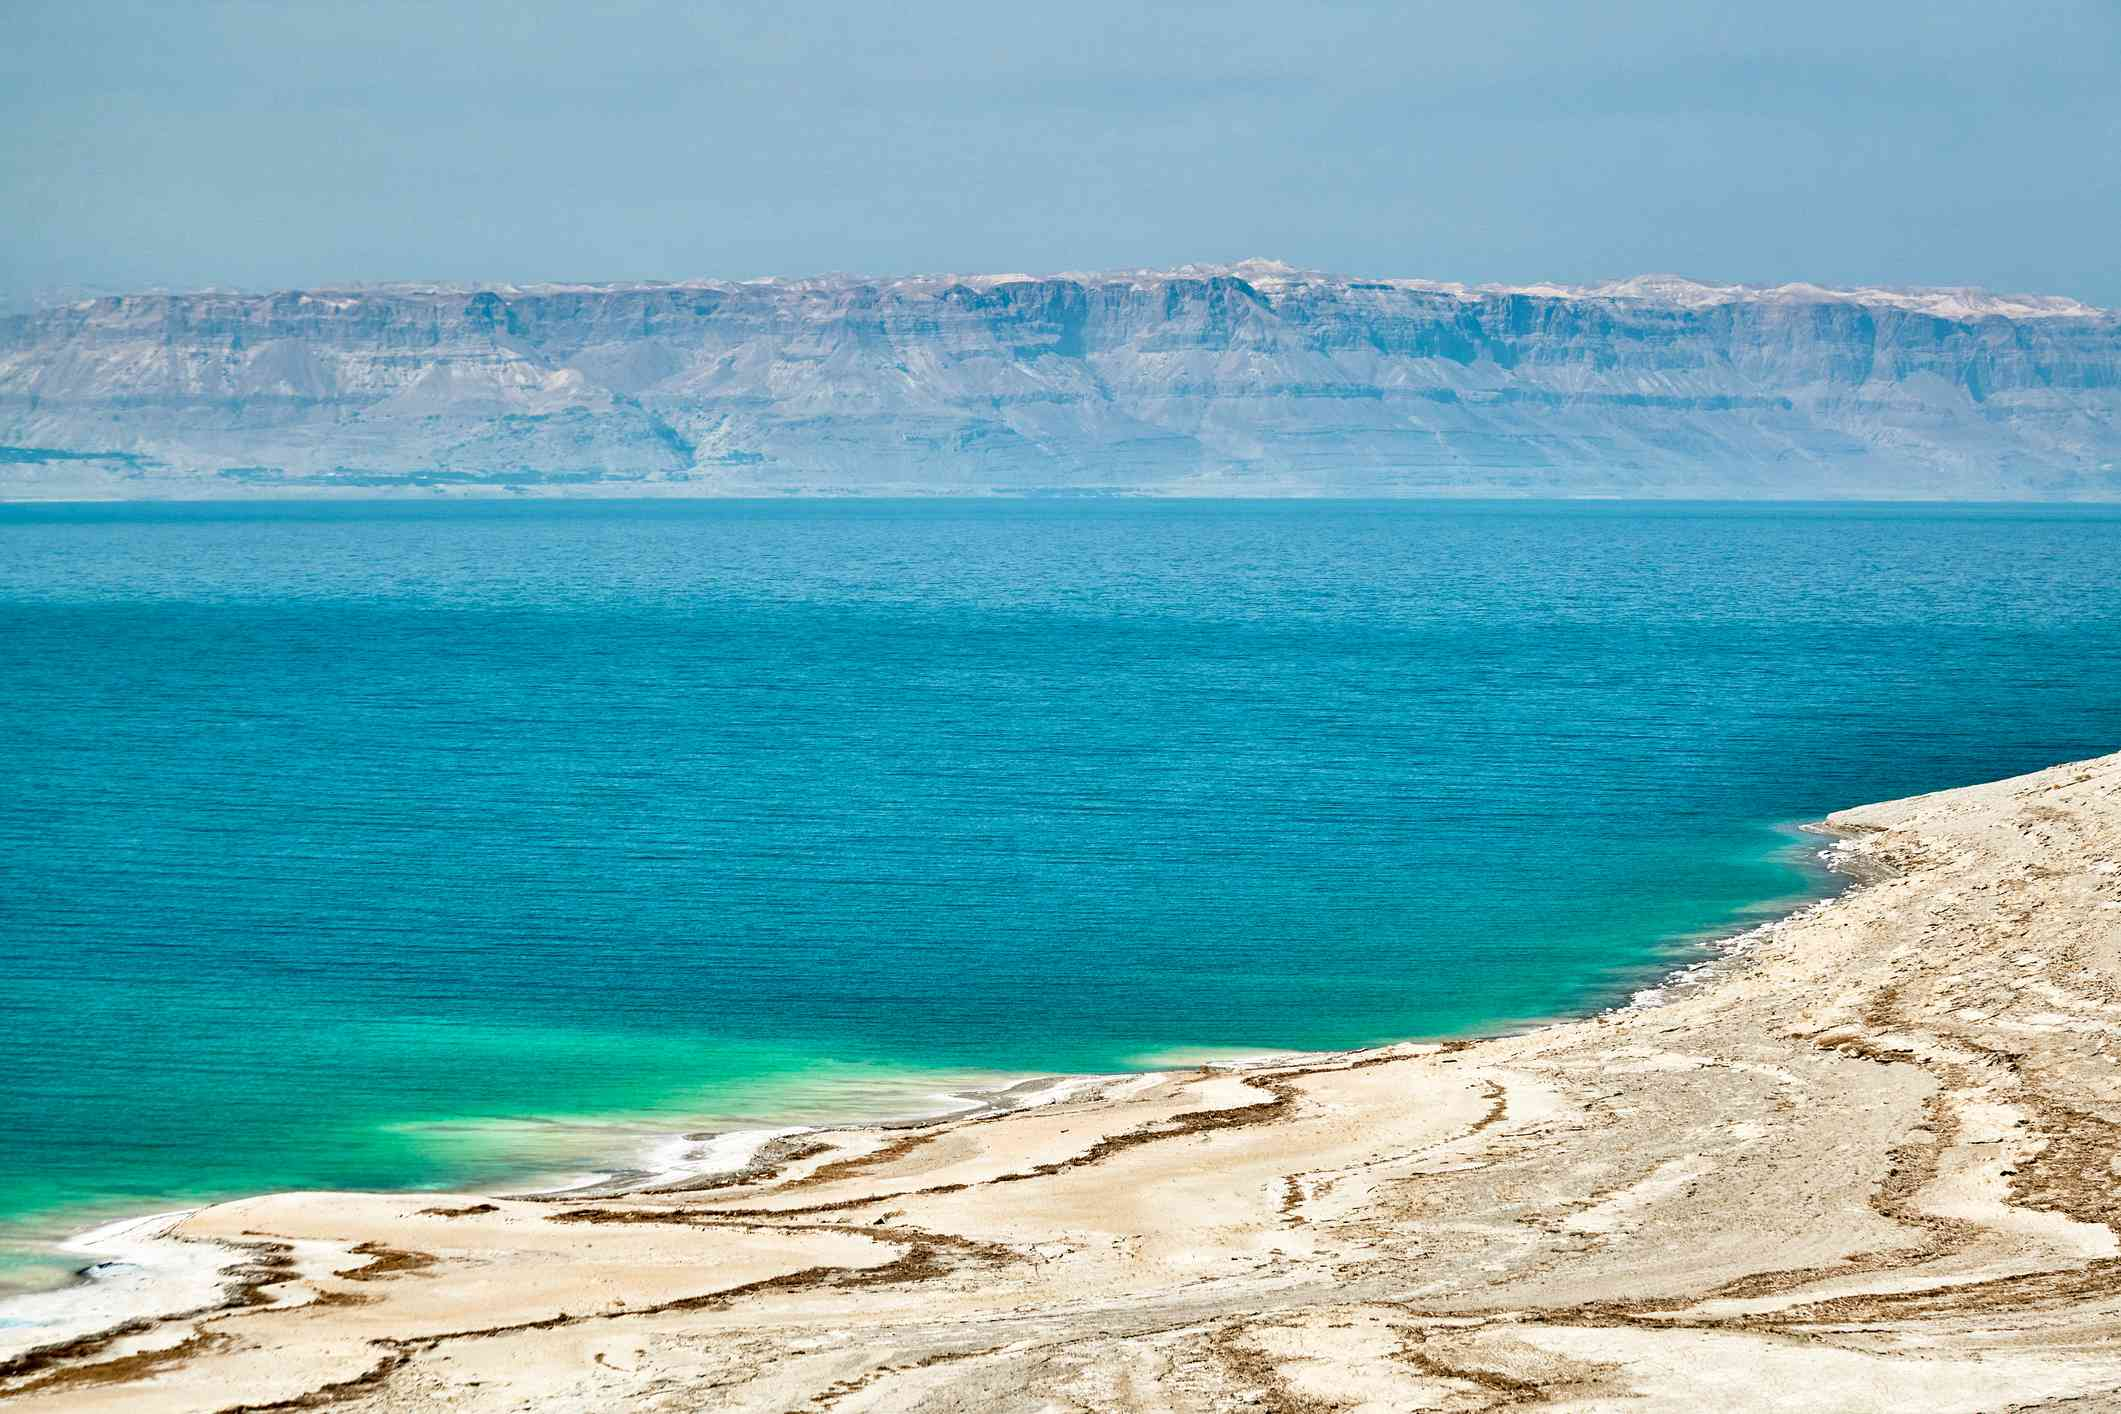 A brilliant blue lake with white salt deposits on its sandy shores